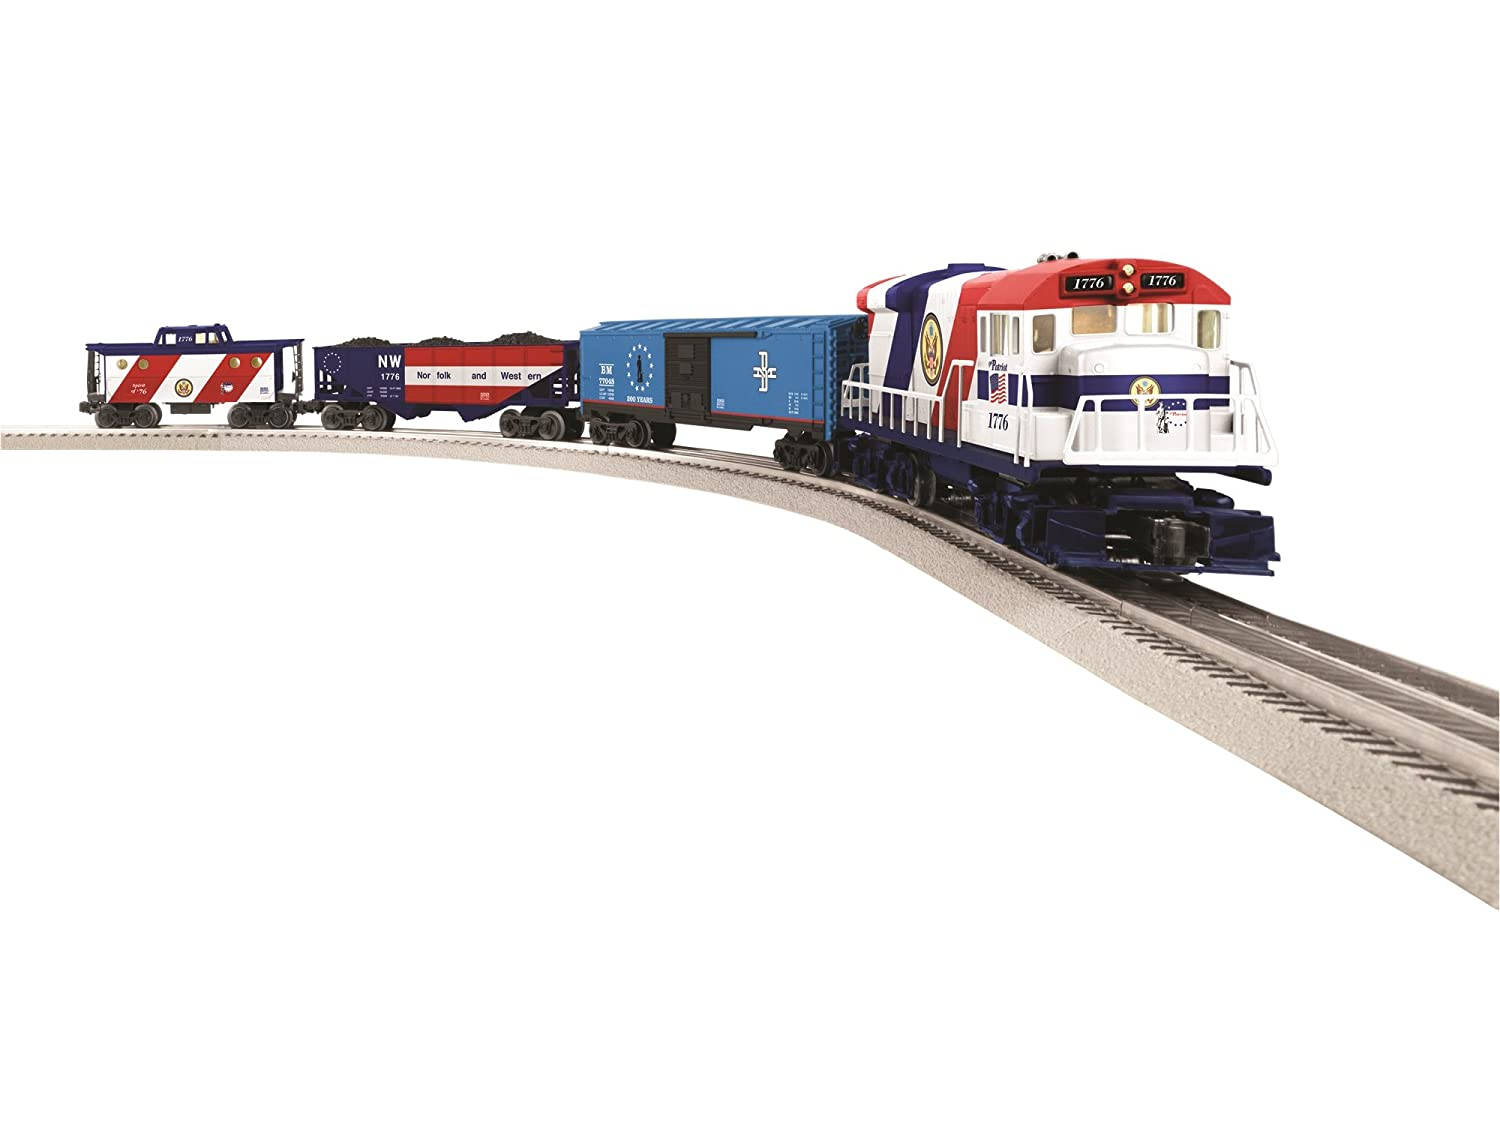 Amazon.com: Save up to 30% on select Lionel Trains: Toys & Games